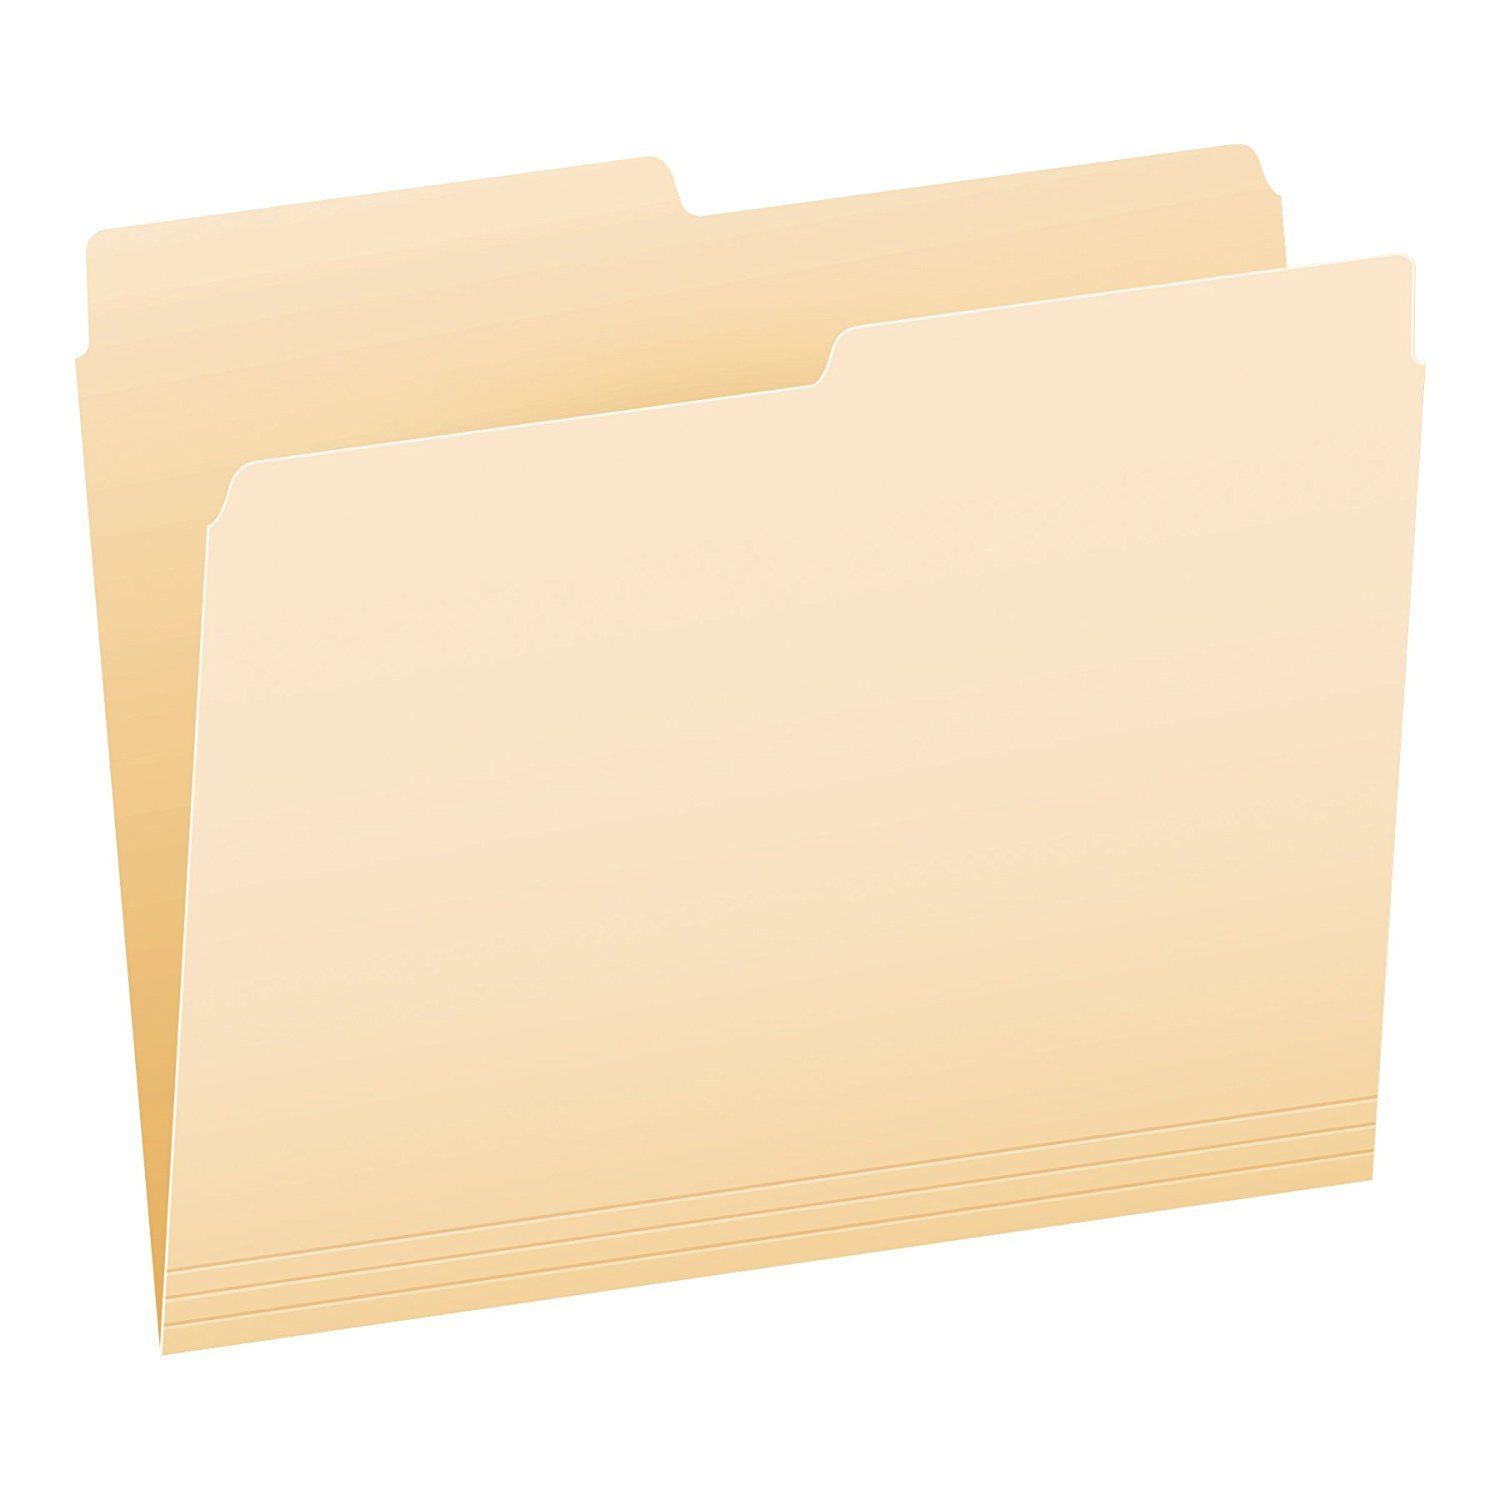 2 Pack Smoke Officemate International 21401 Letter Size Officemate Wall File